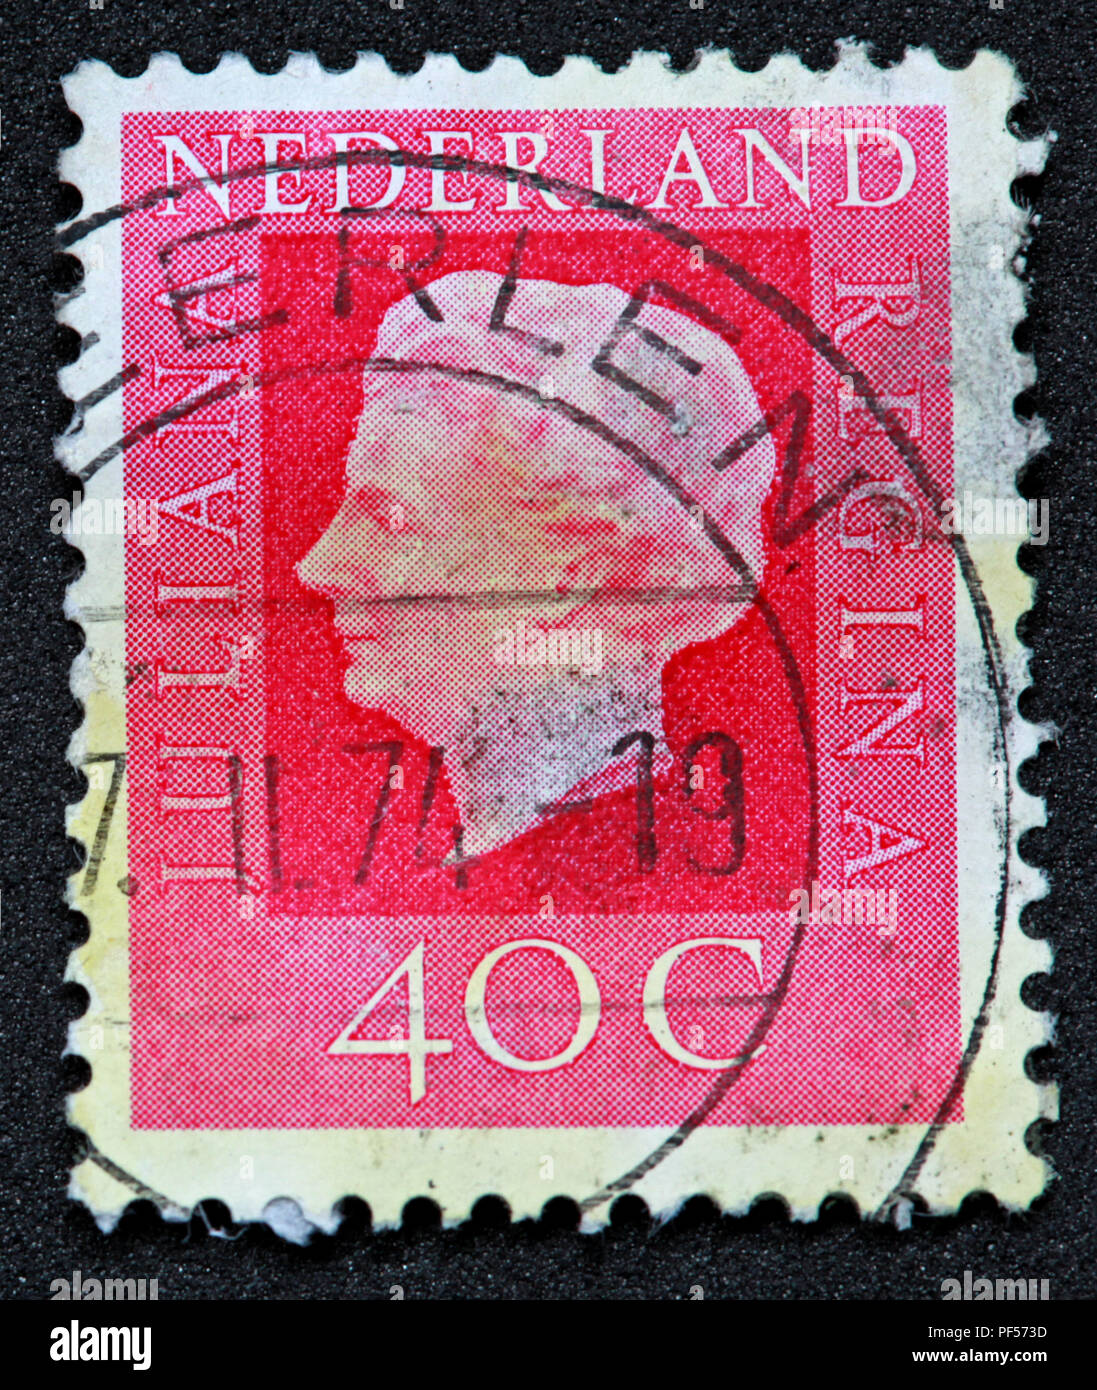 Used franked Nederland Netherlands Stamp, Juliana Regina 40c Forty Cent - Stock Image